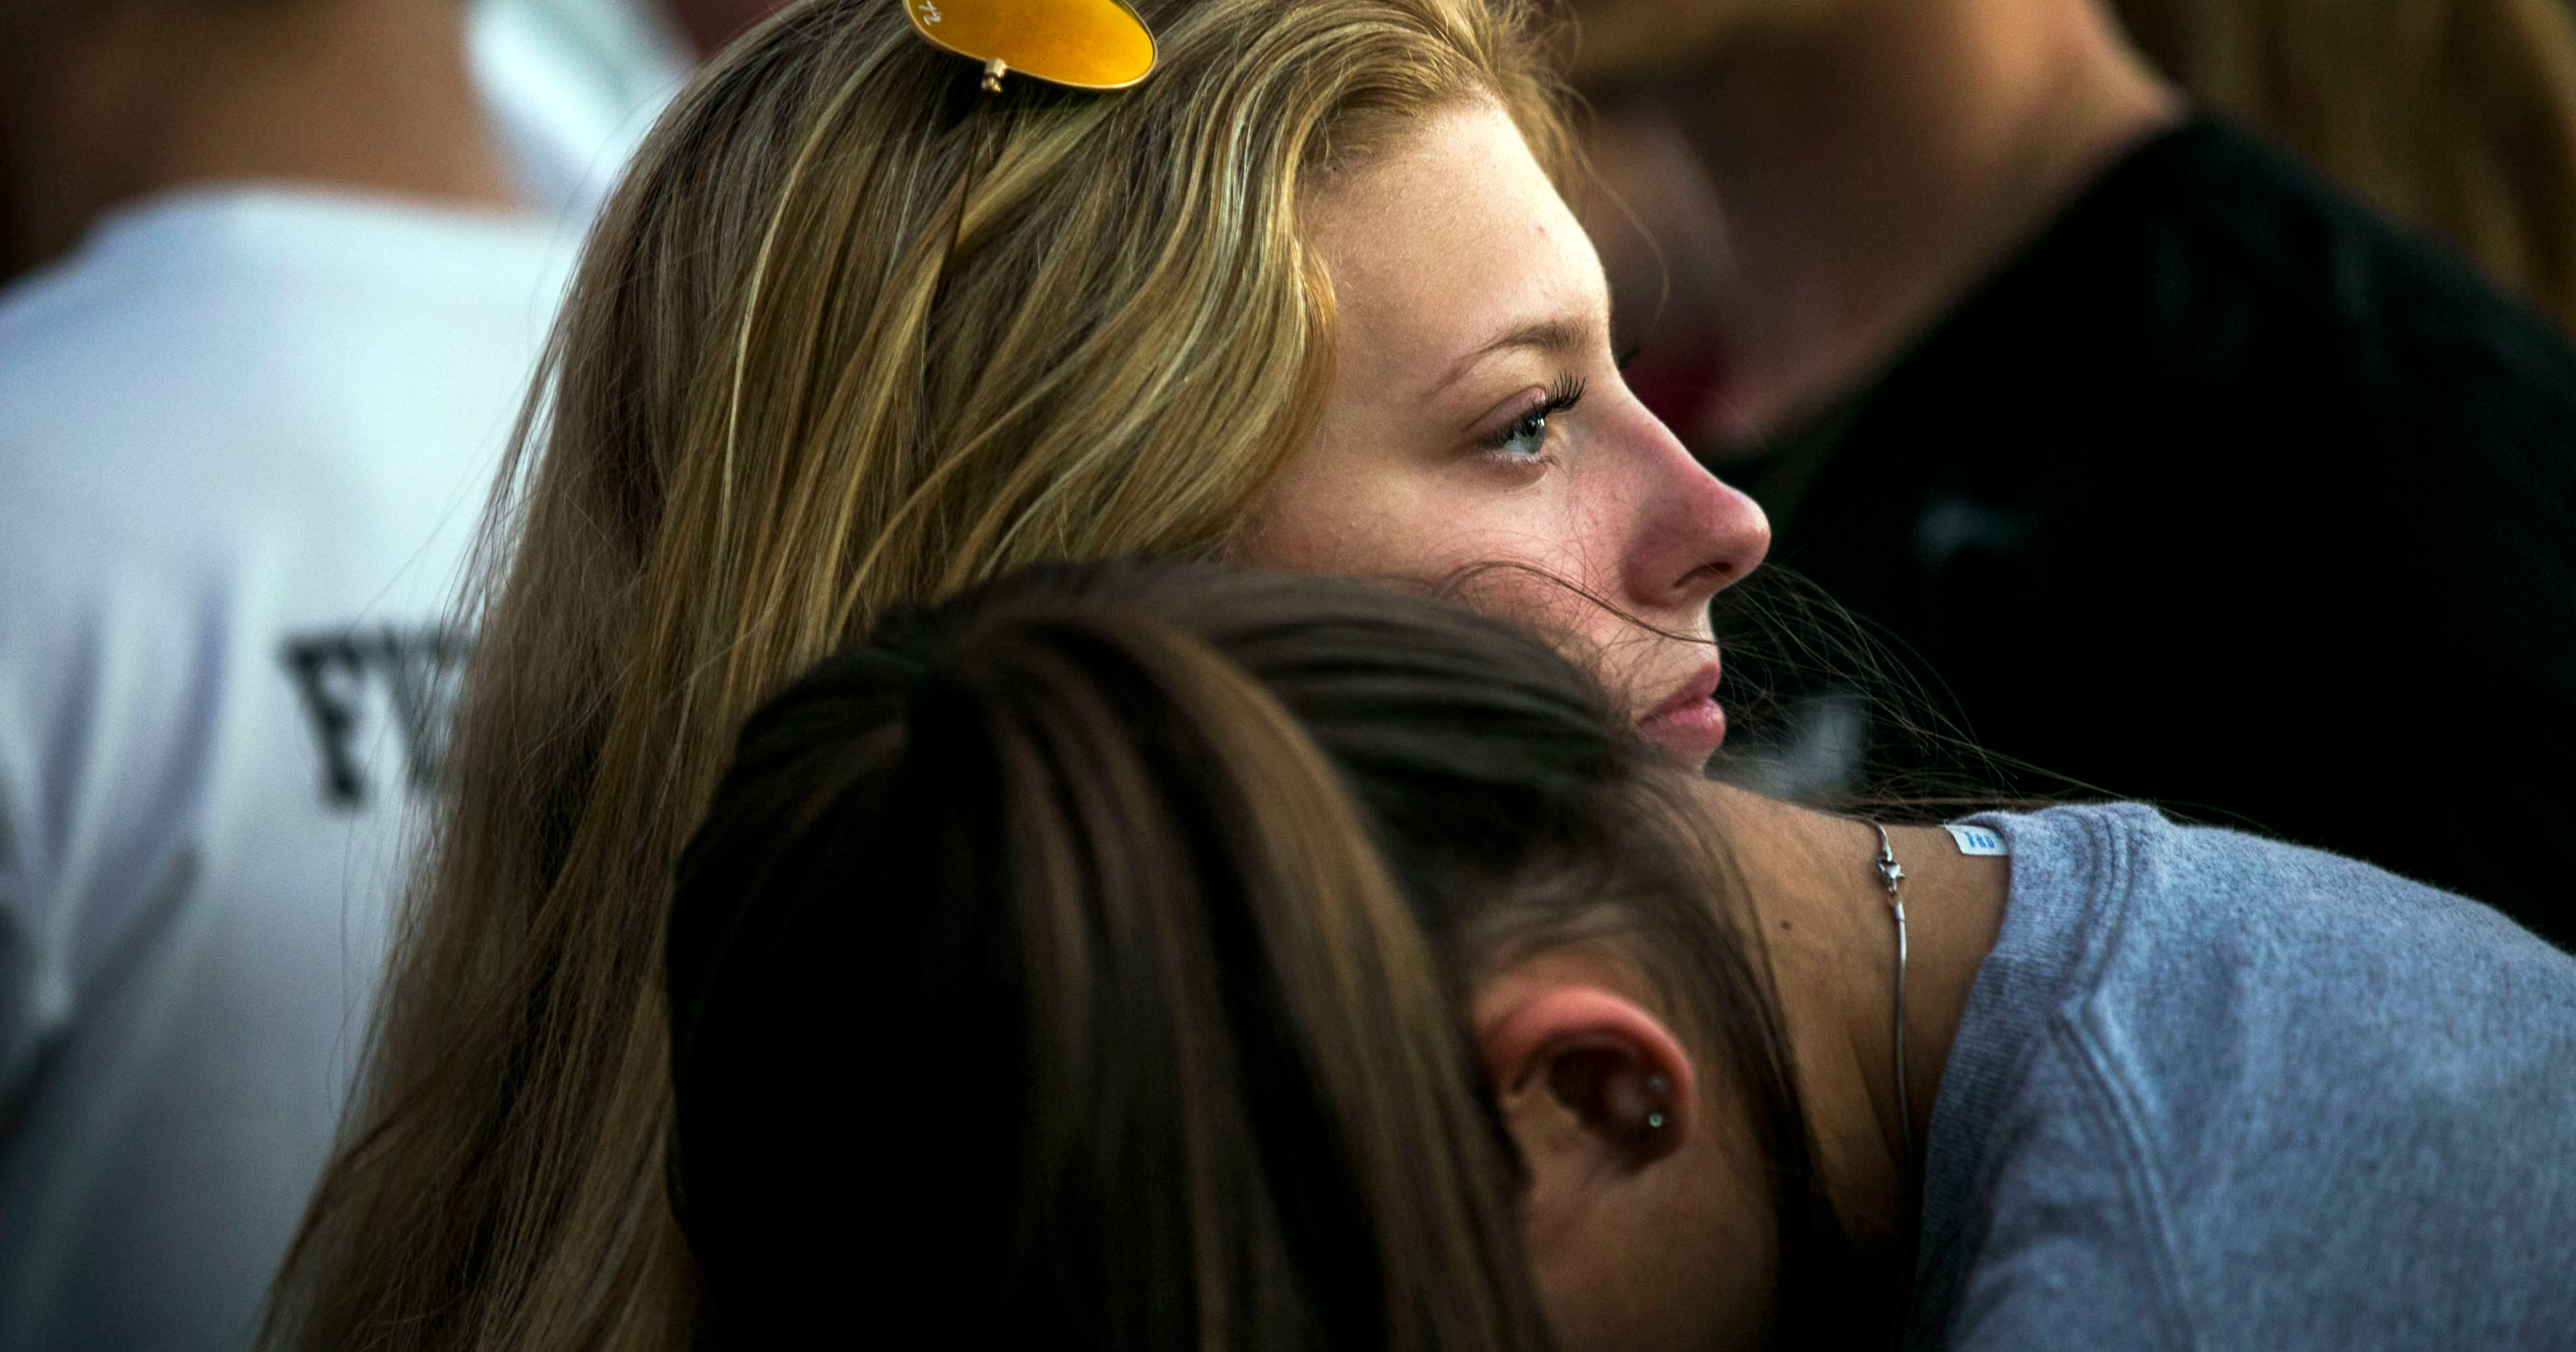 Florida school shooting: Why active shooter training didn't help